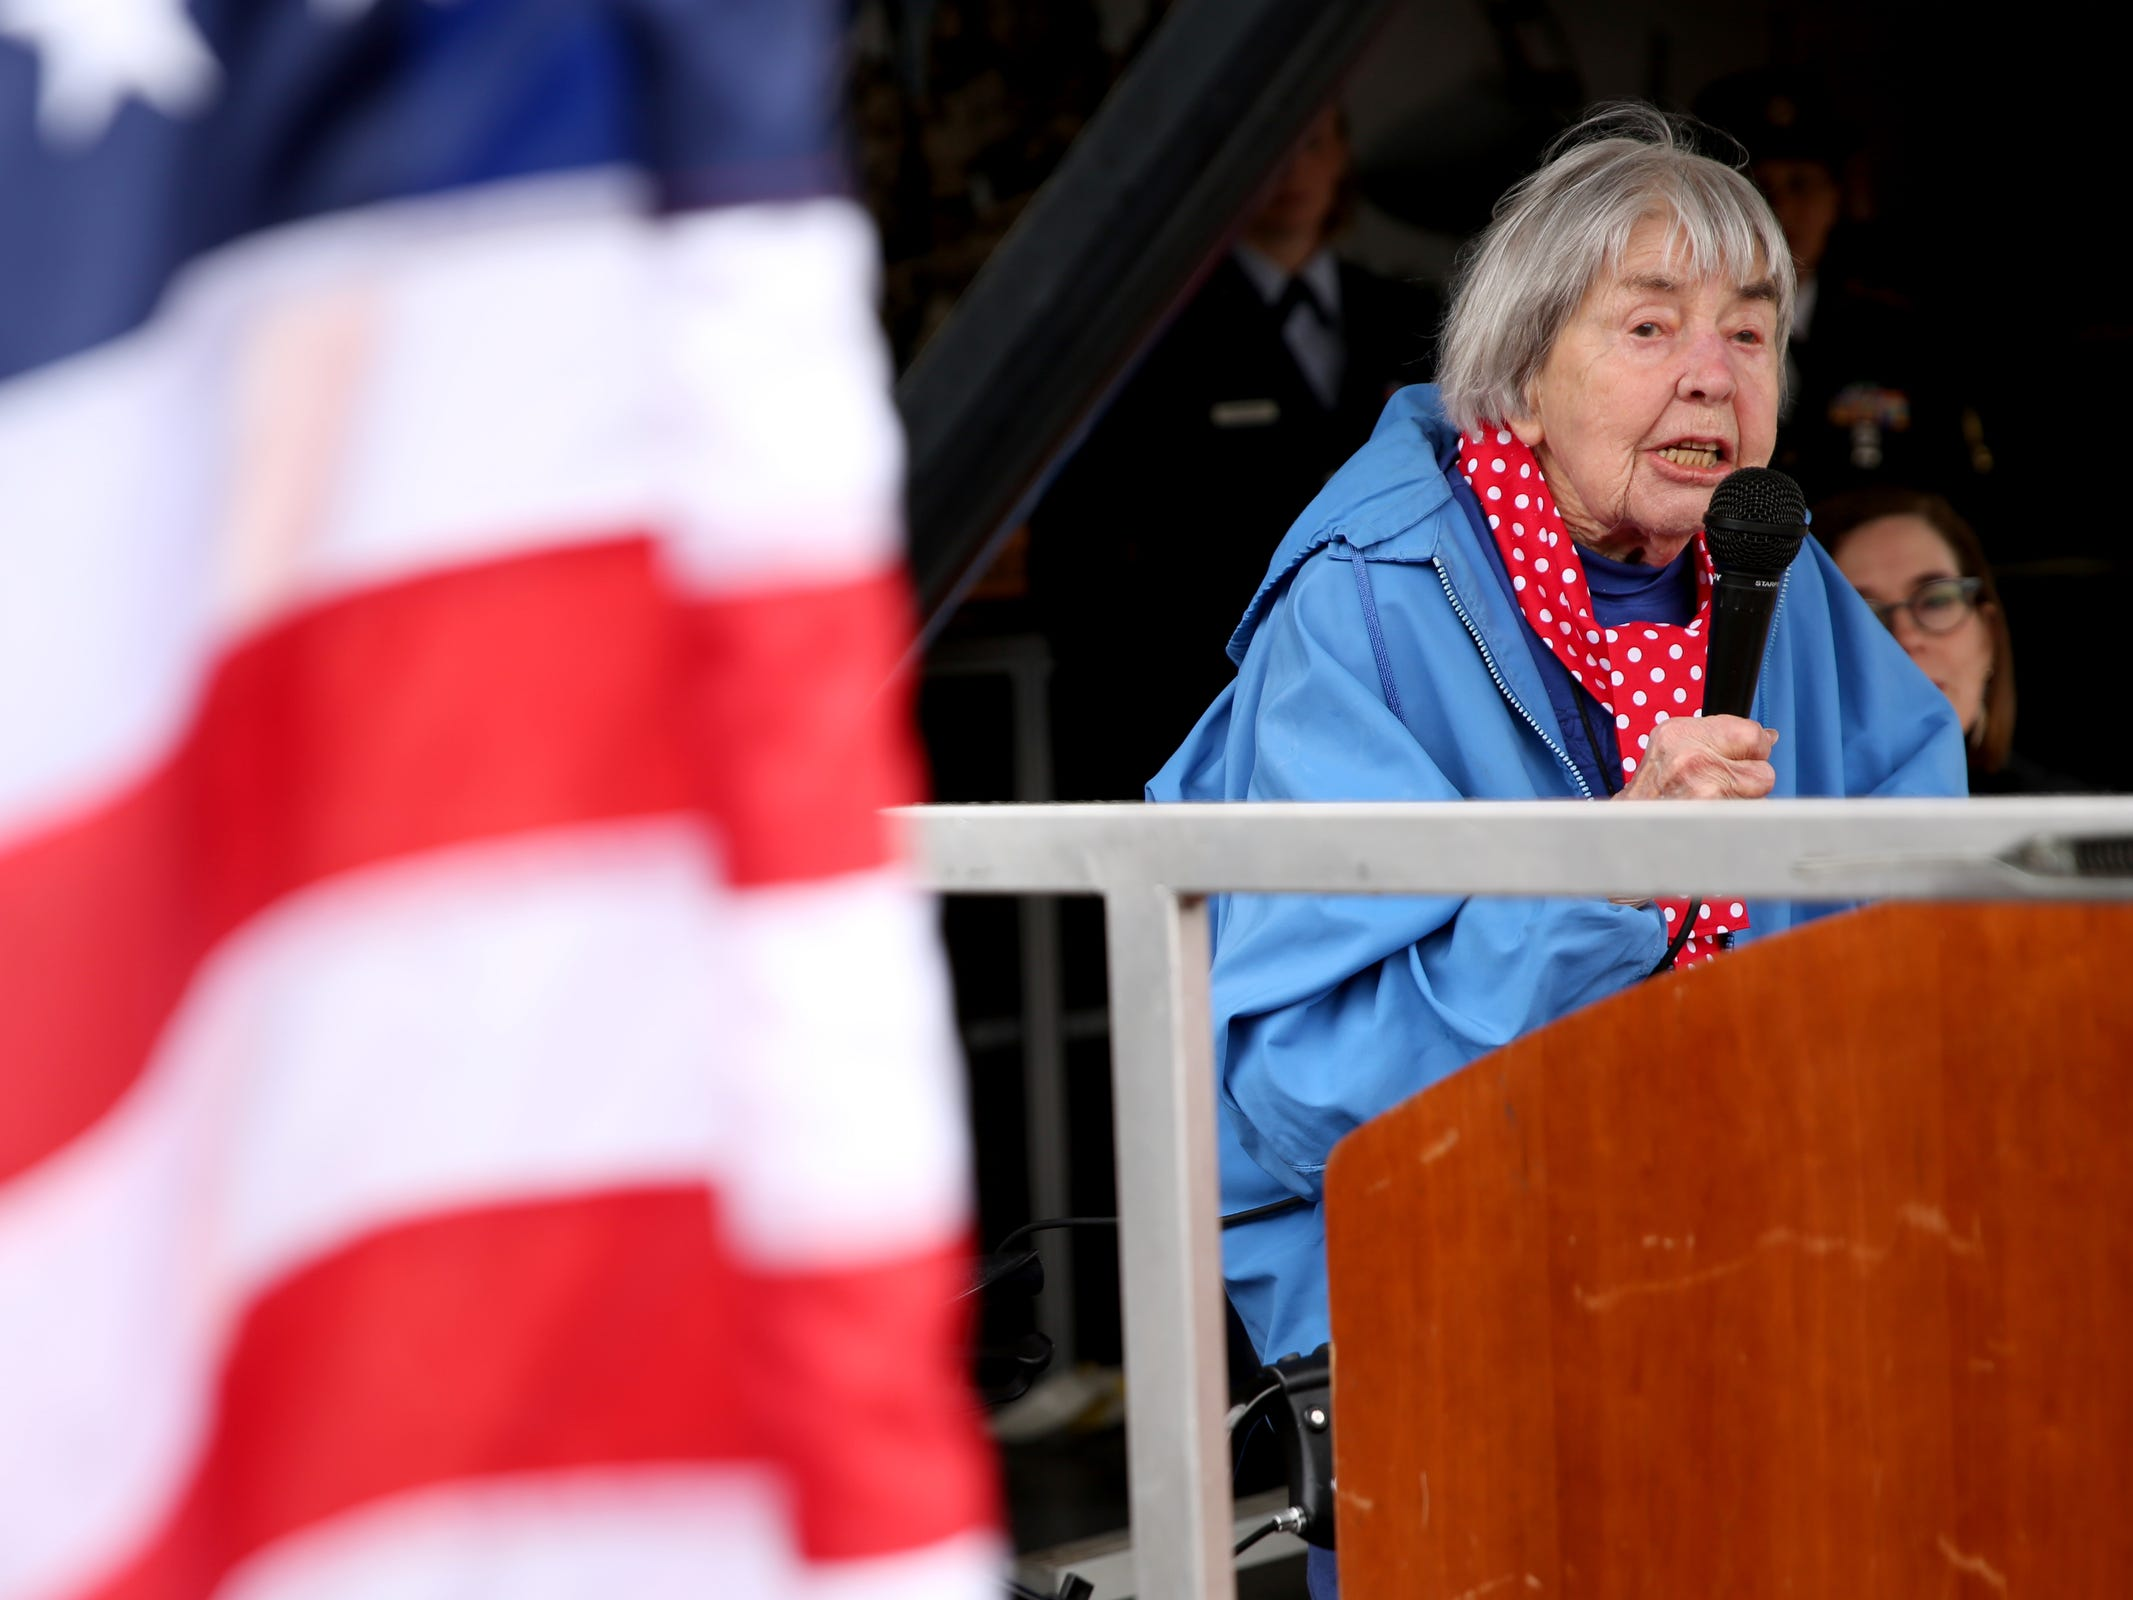 Rita Hathaway, a real-life Rosie the Riveter who worked in a Boeing plant during World War II, speaks during an Armed Forces Day celebration at the Oregon State Capitol in Salem on May 14, 2019.